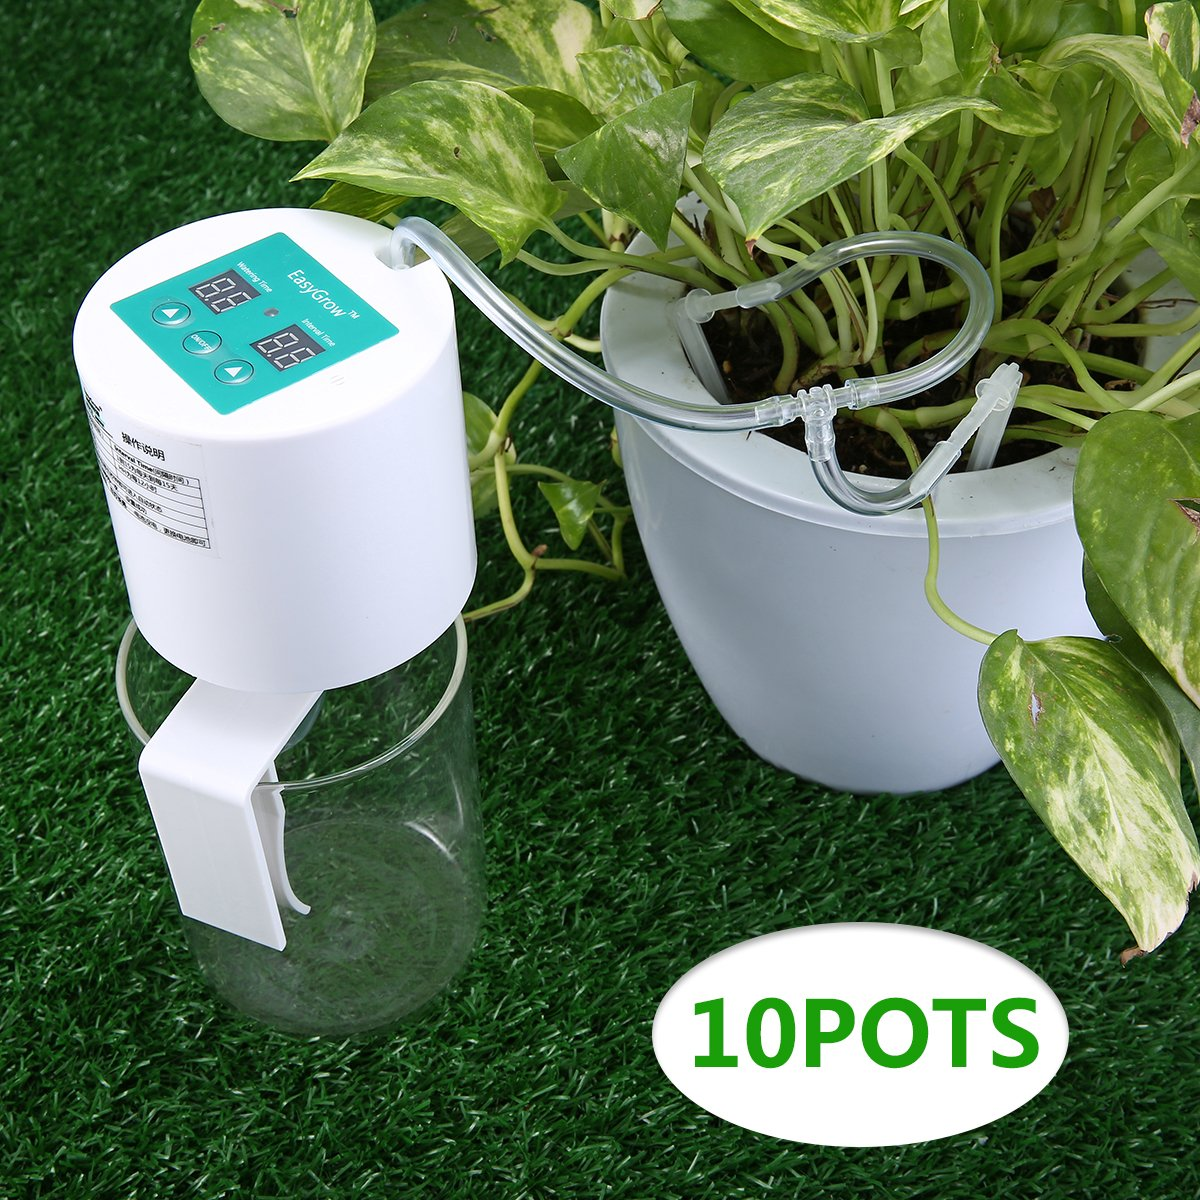 KINGSO 10M Drip Irrigation Kit Self Watering System with 15-Day Watering/Interval Time Setting for 10 Indoor Potted Plants Vacation Plant Garden Flowers Auto Watering